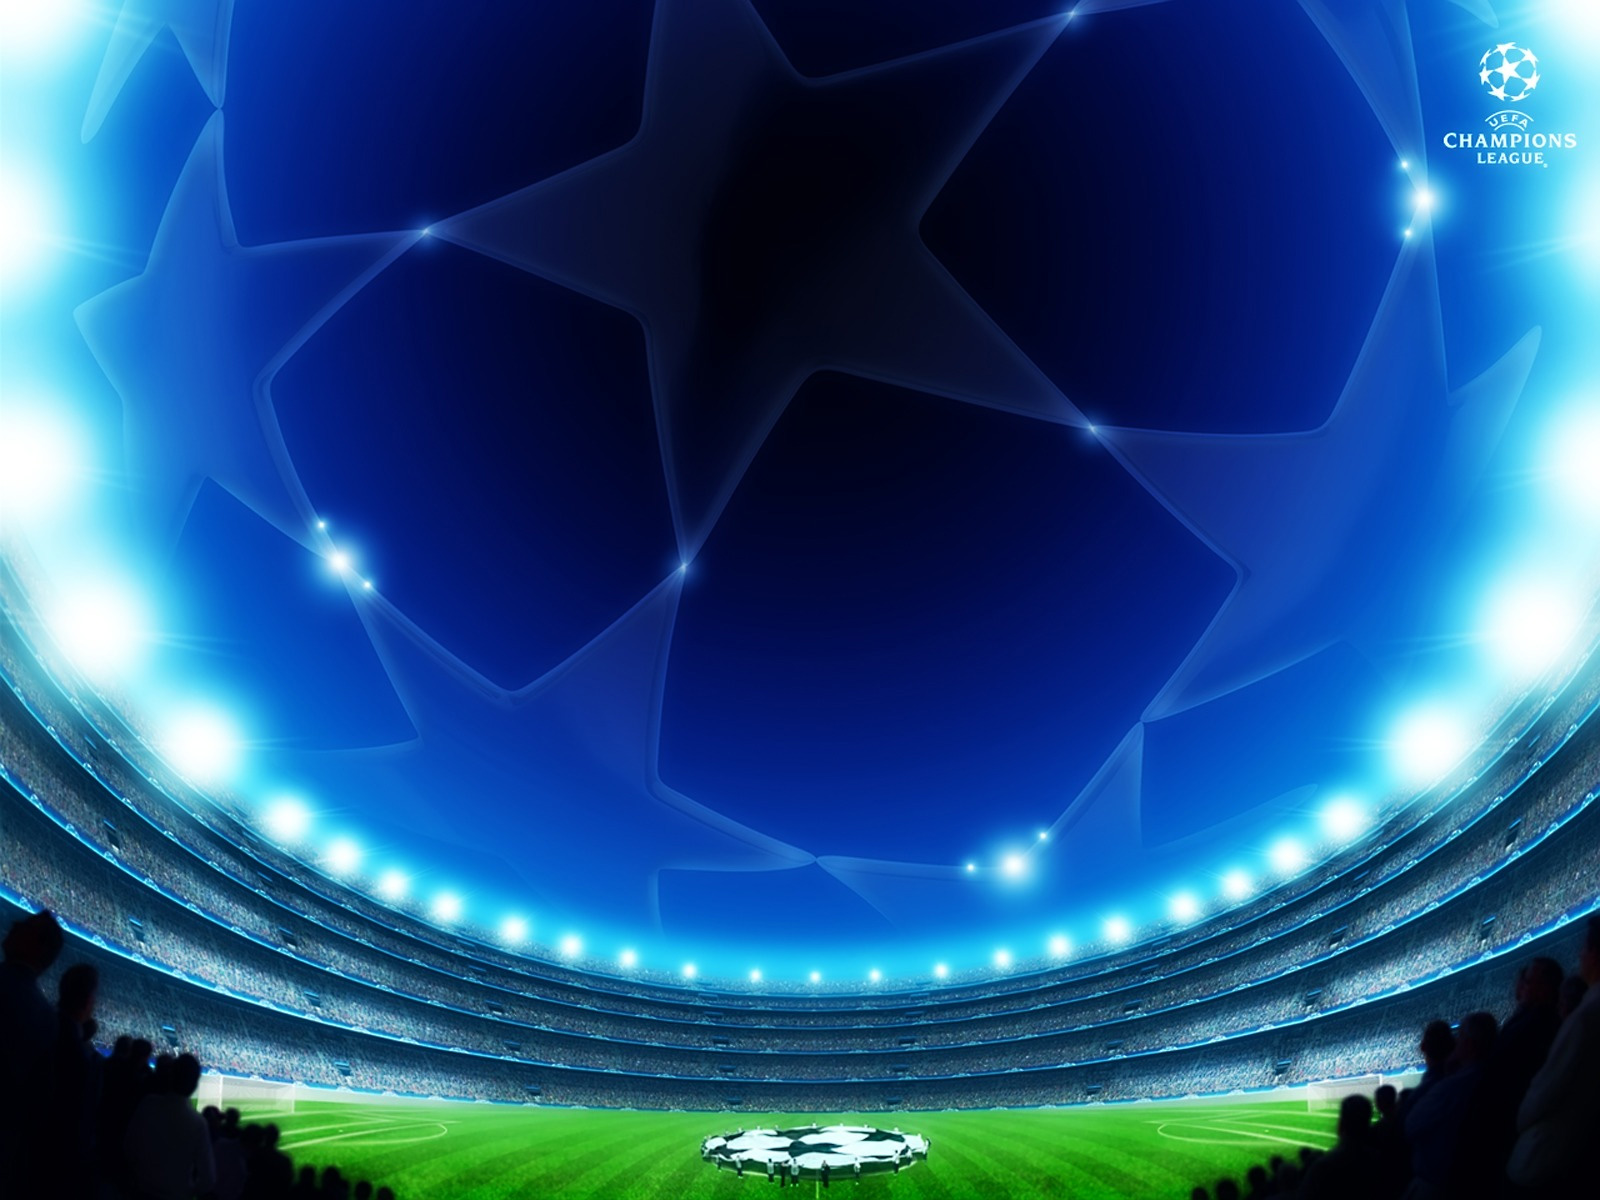 Introduced in 1992, the champions league is an annual continental club football competition organised by the uefa. 10 Best UEFA Champions League Wallpaper - InspirationSeek.com